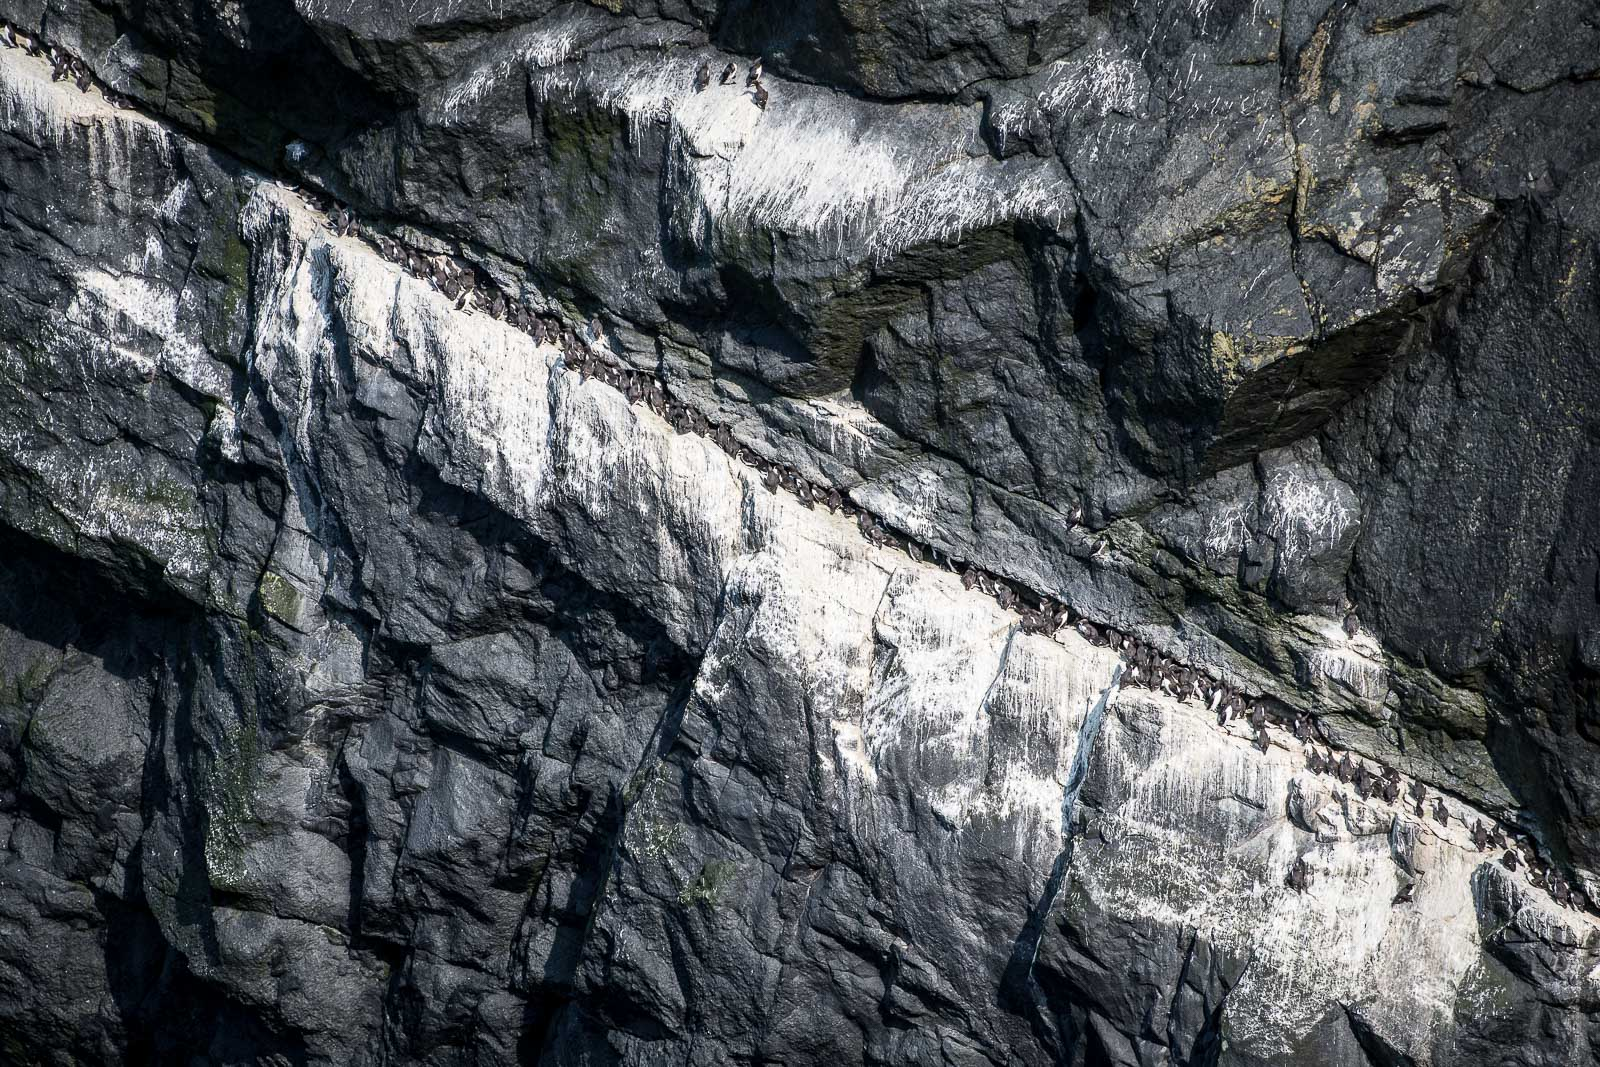 Guillemots and Razorbills nesting on a cliff ledge near the  Tunnel. Nikon D500 70-200mm f2.8 at 200mm. 1/1250sec f3.5 ISO 140